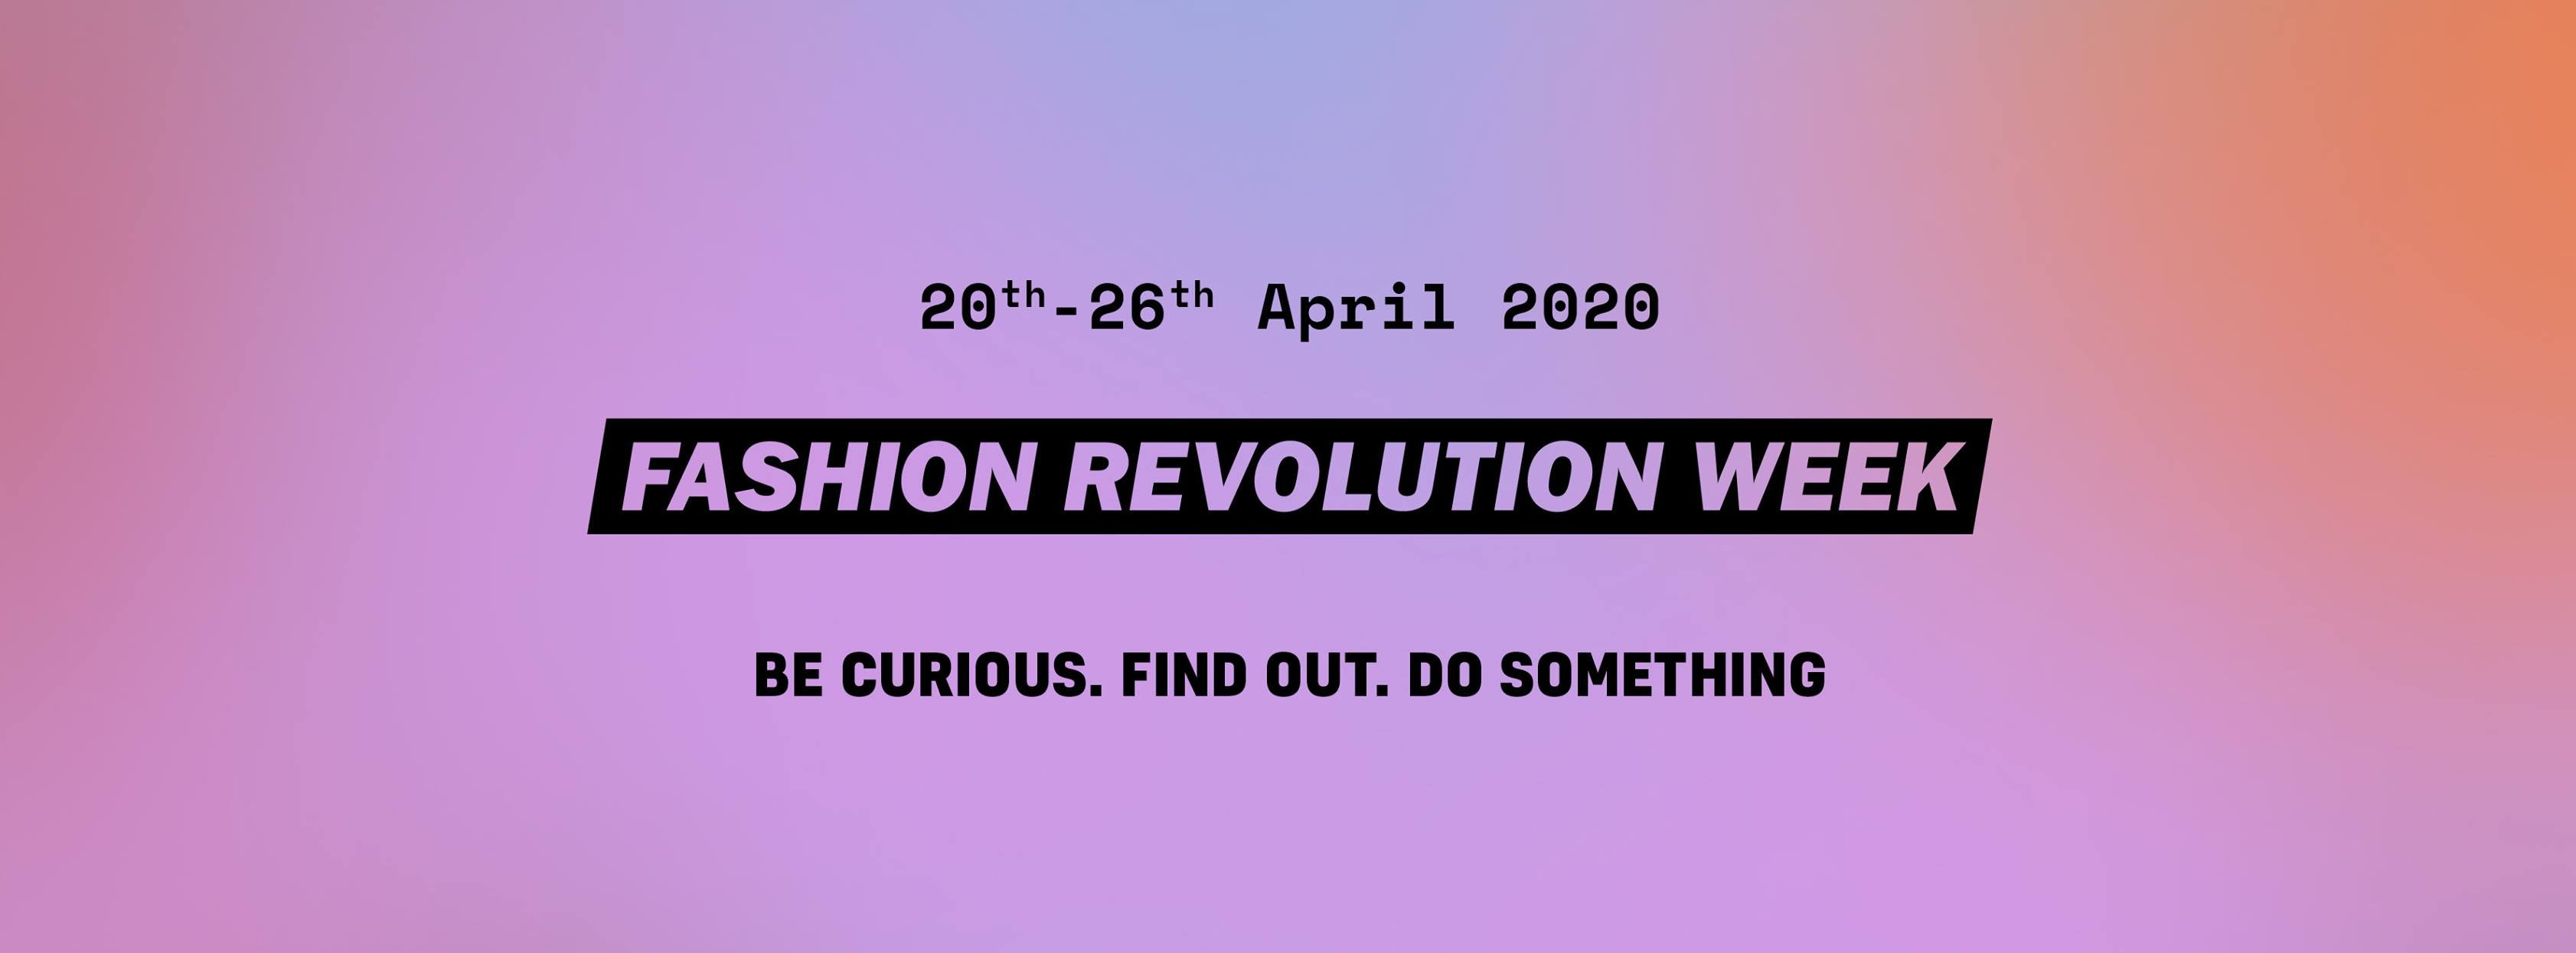 Fashion Revolution Week in Poland logo